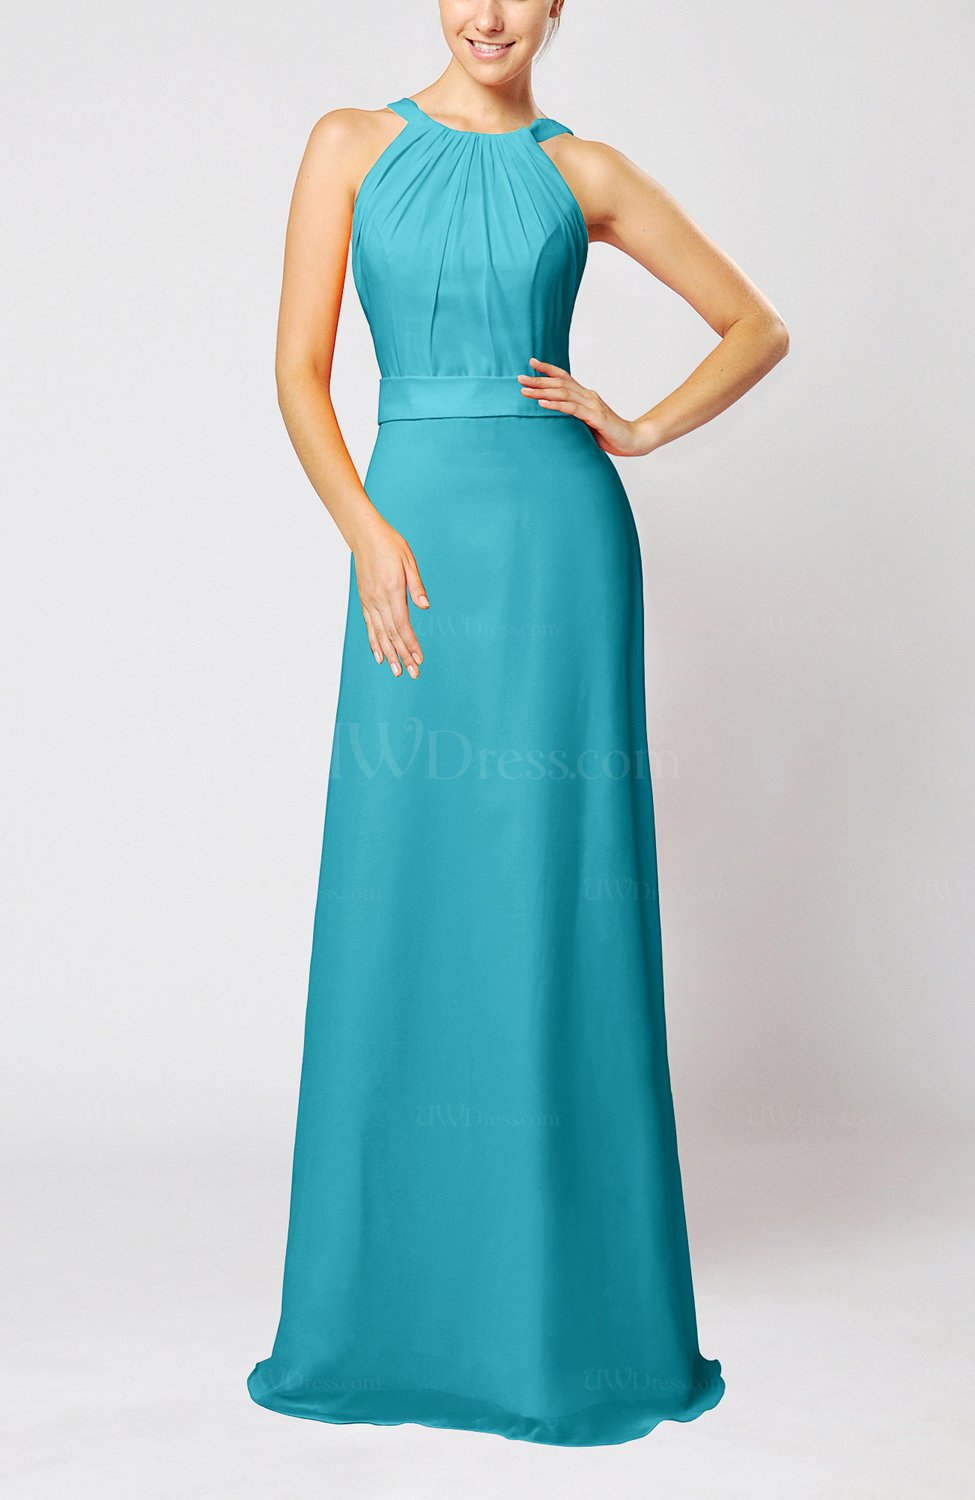 At Morpheus Boutique - Teal Lace Floral Designer Sleeveless Pleated Dress Find this Pin and more on Cocktail dress by Erin McPherson. Explore our range of Teal lace dress! Today my post is all about fashionable and trendy Teal lace dress Shop our range of evening dresses, floral.